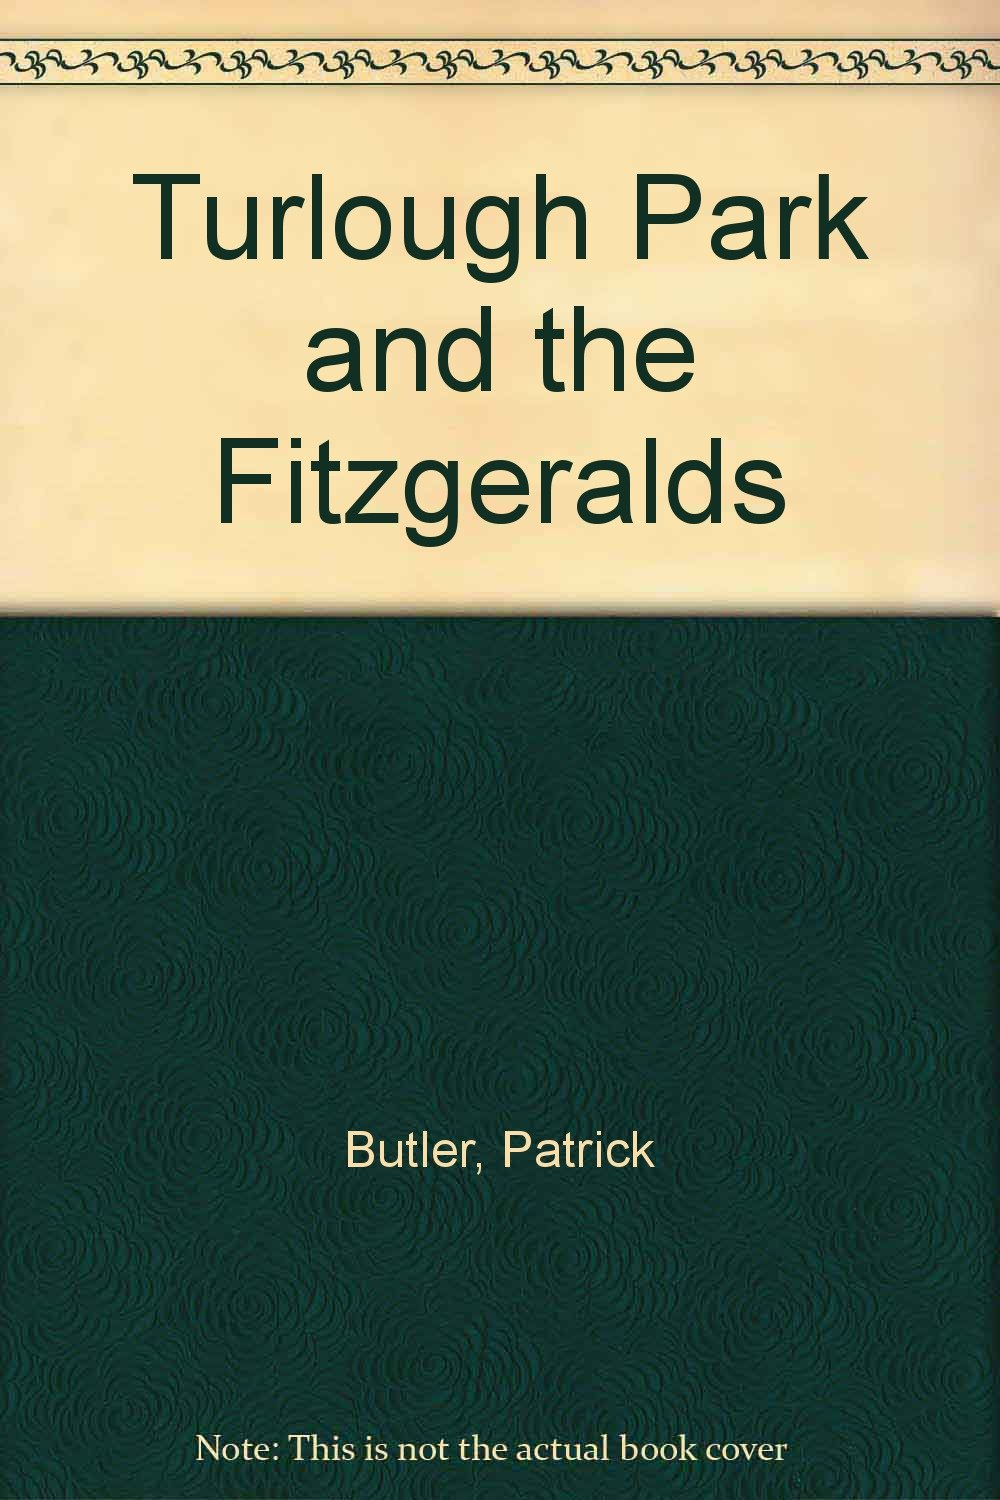 Turlough Park and the Fitzgeralds